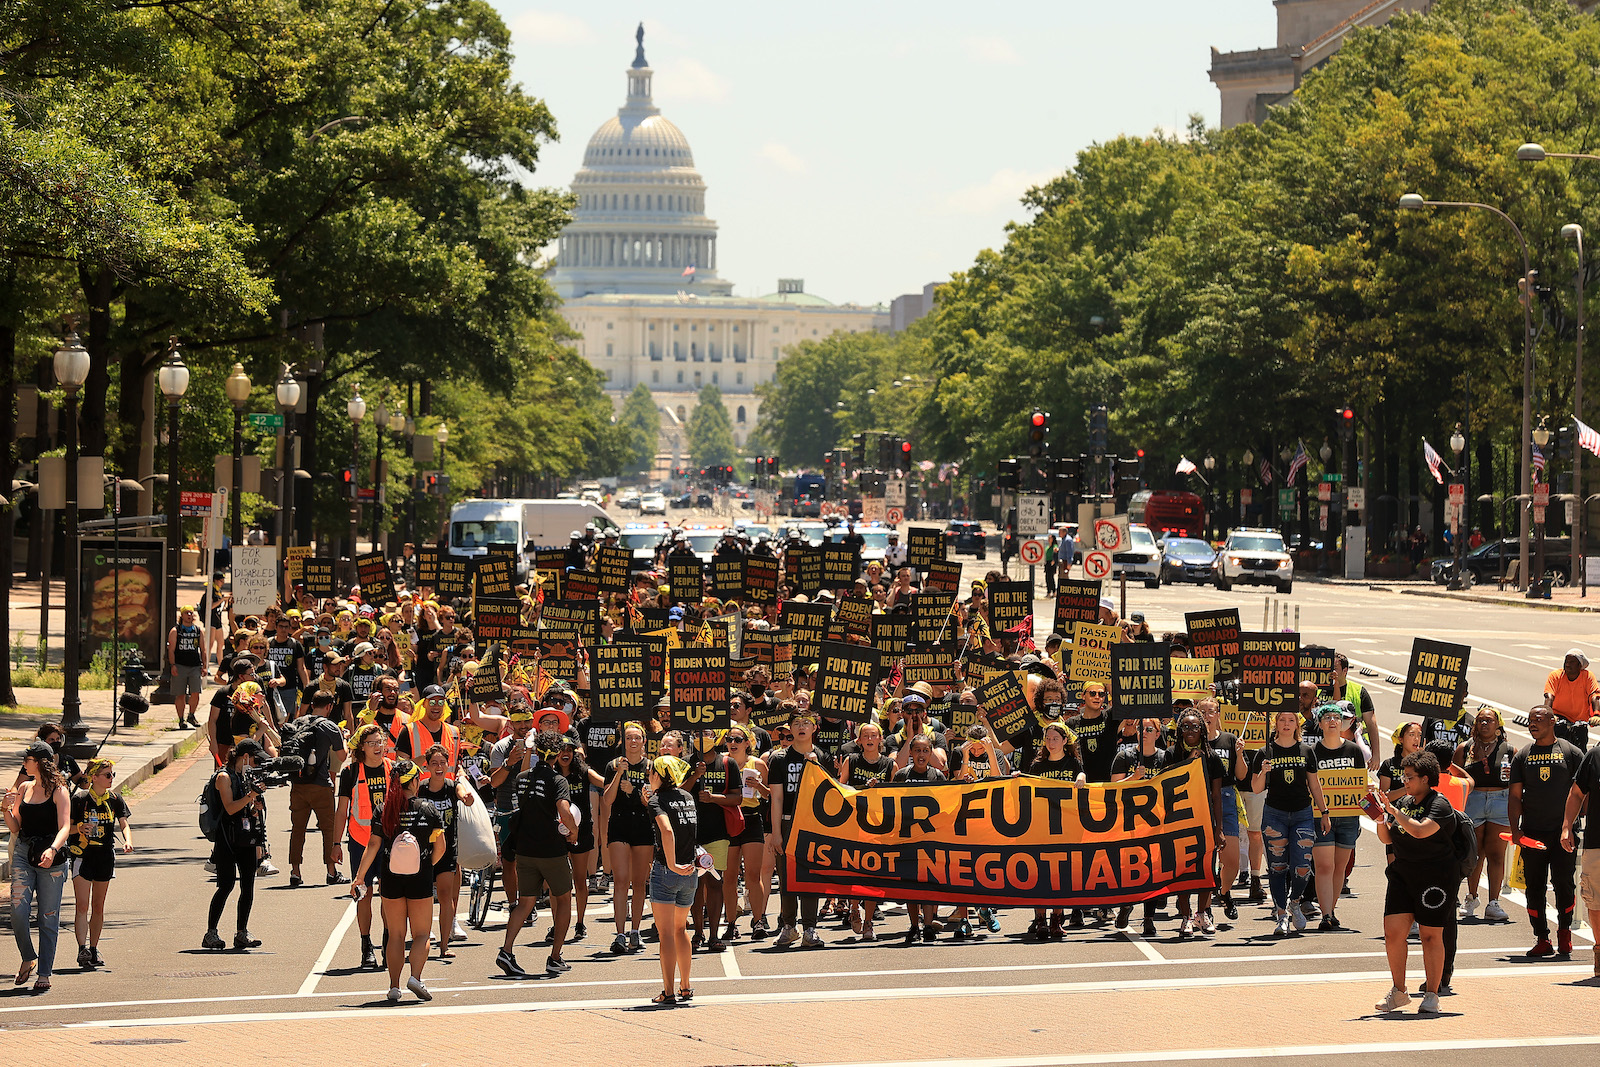 Hundreds of progressive youth climate activists protest outside the U.S. Capitol